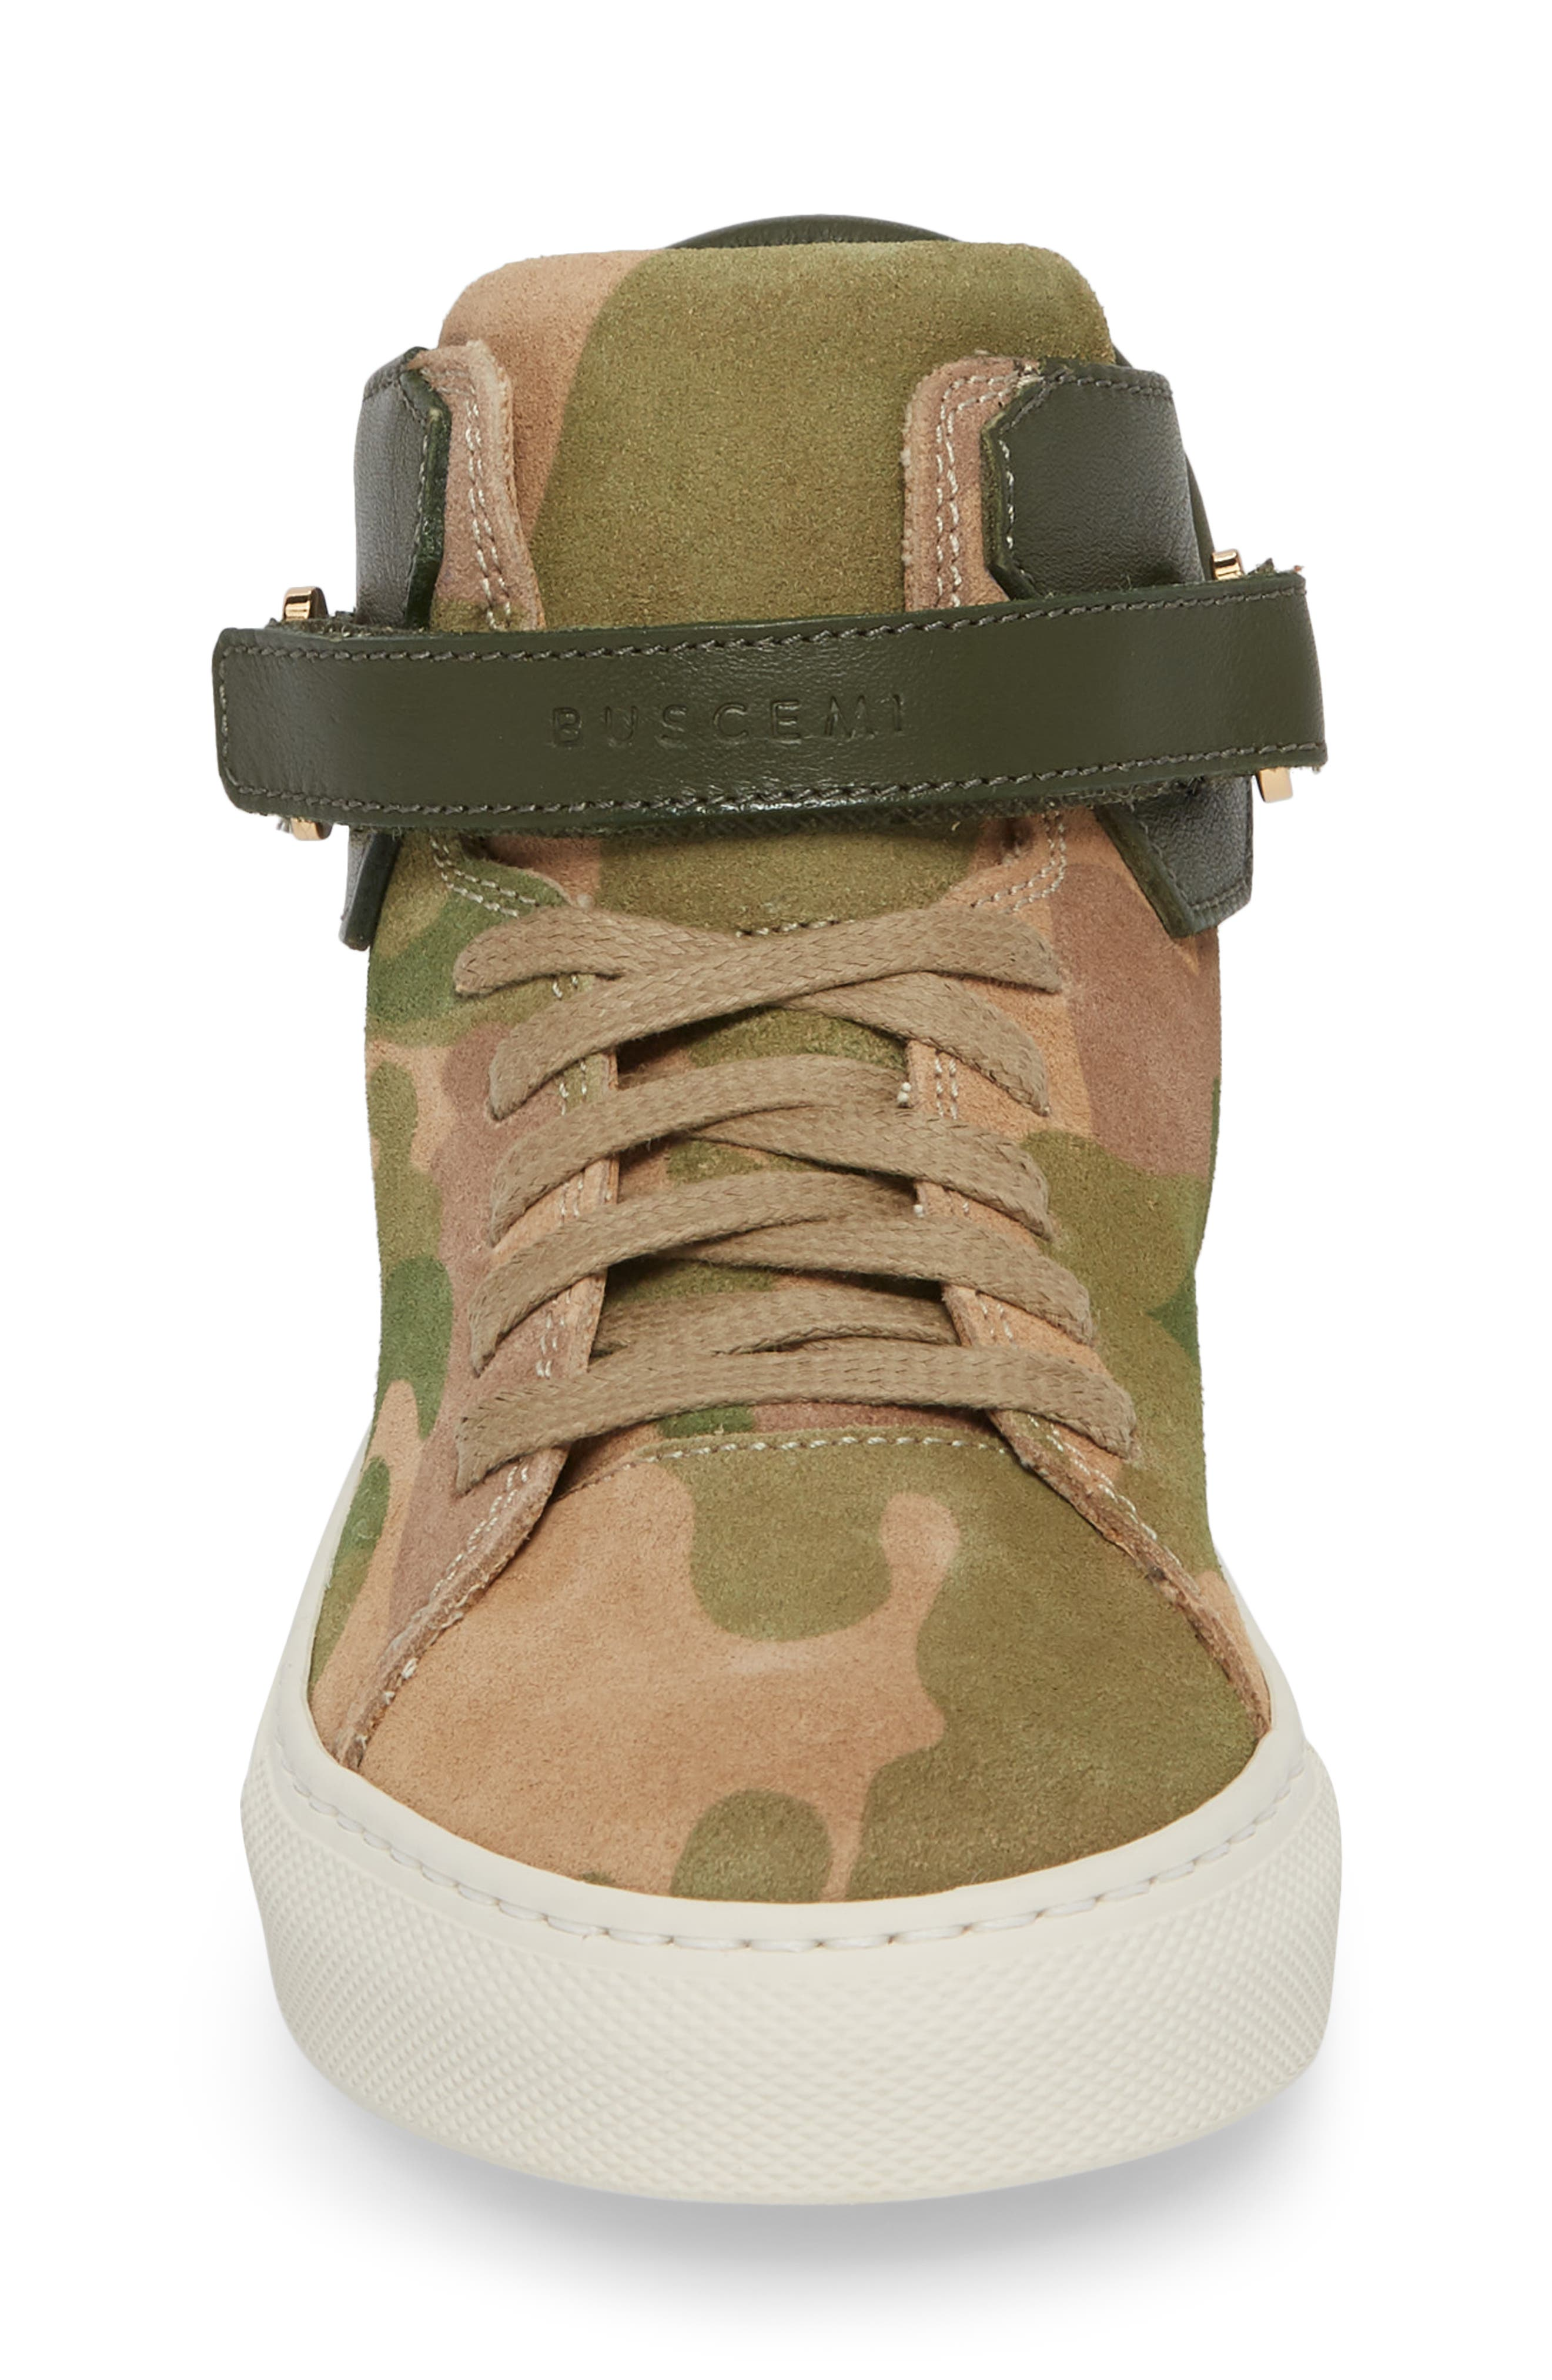 Suede High Top Sneaker,                             Alternate thumbnail 4, color,                             CAMO SUEDE